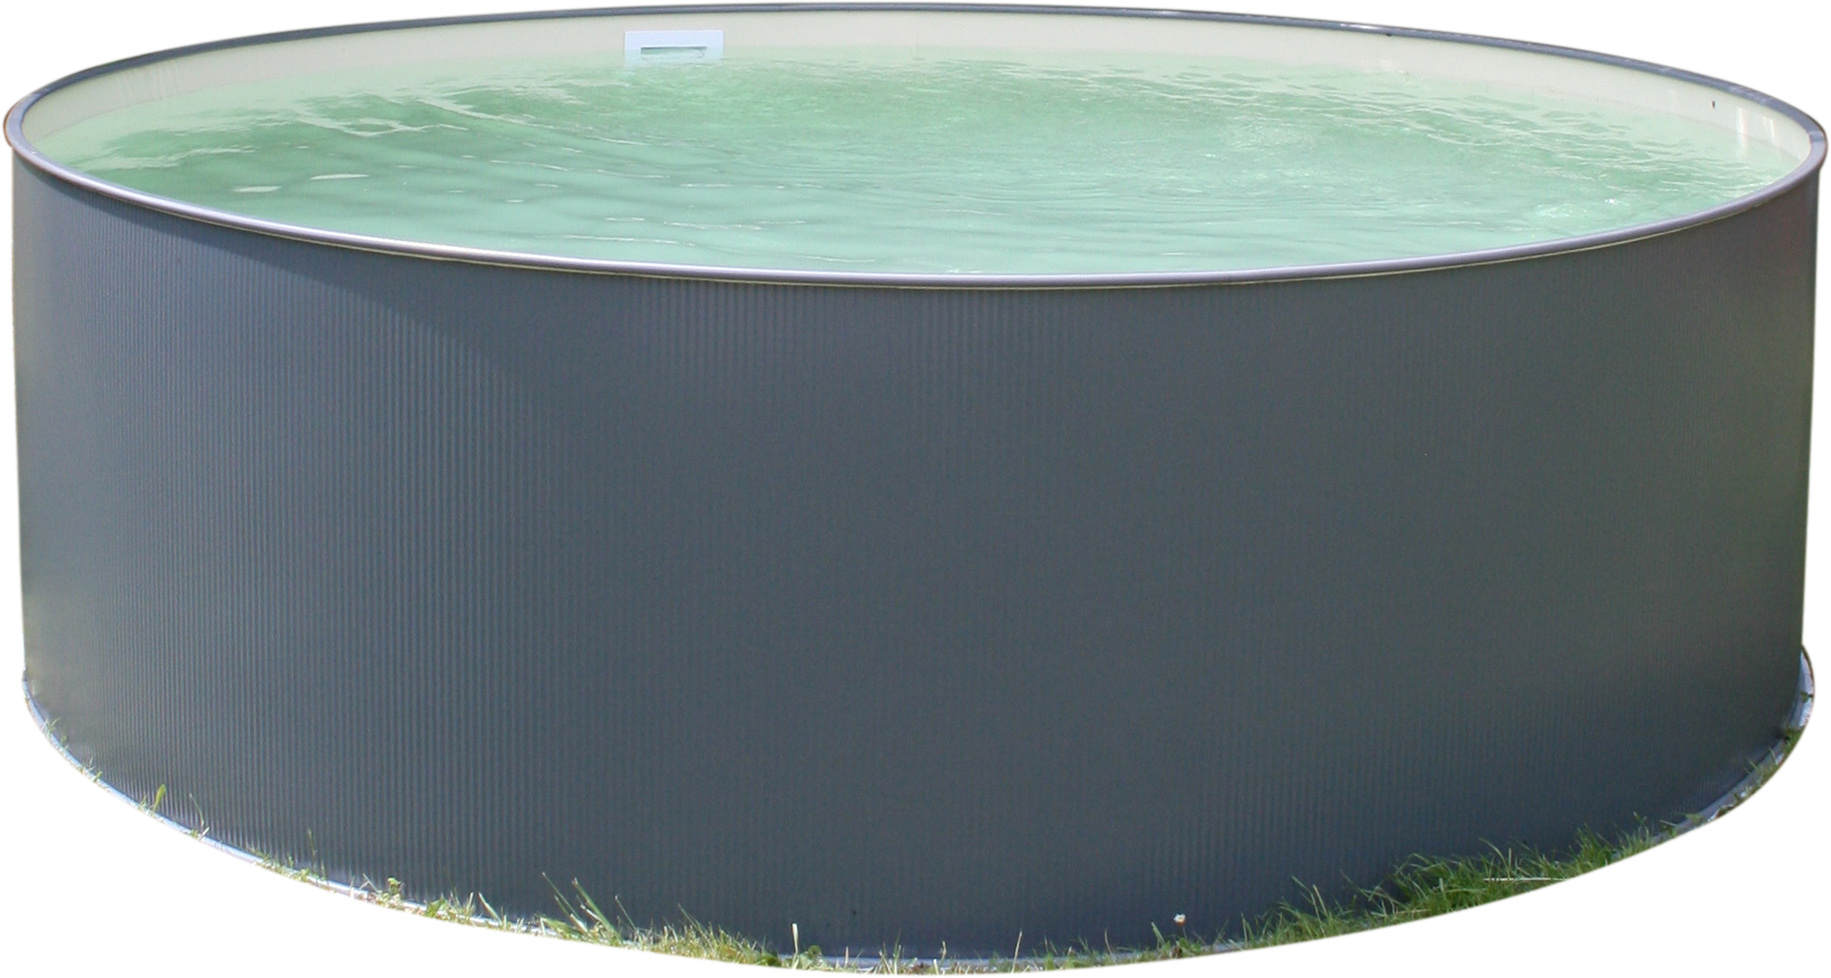 PLANET POOL Rundbecken-Set Anthrazit 350x90cm, 3 teilig